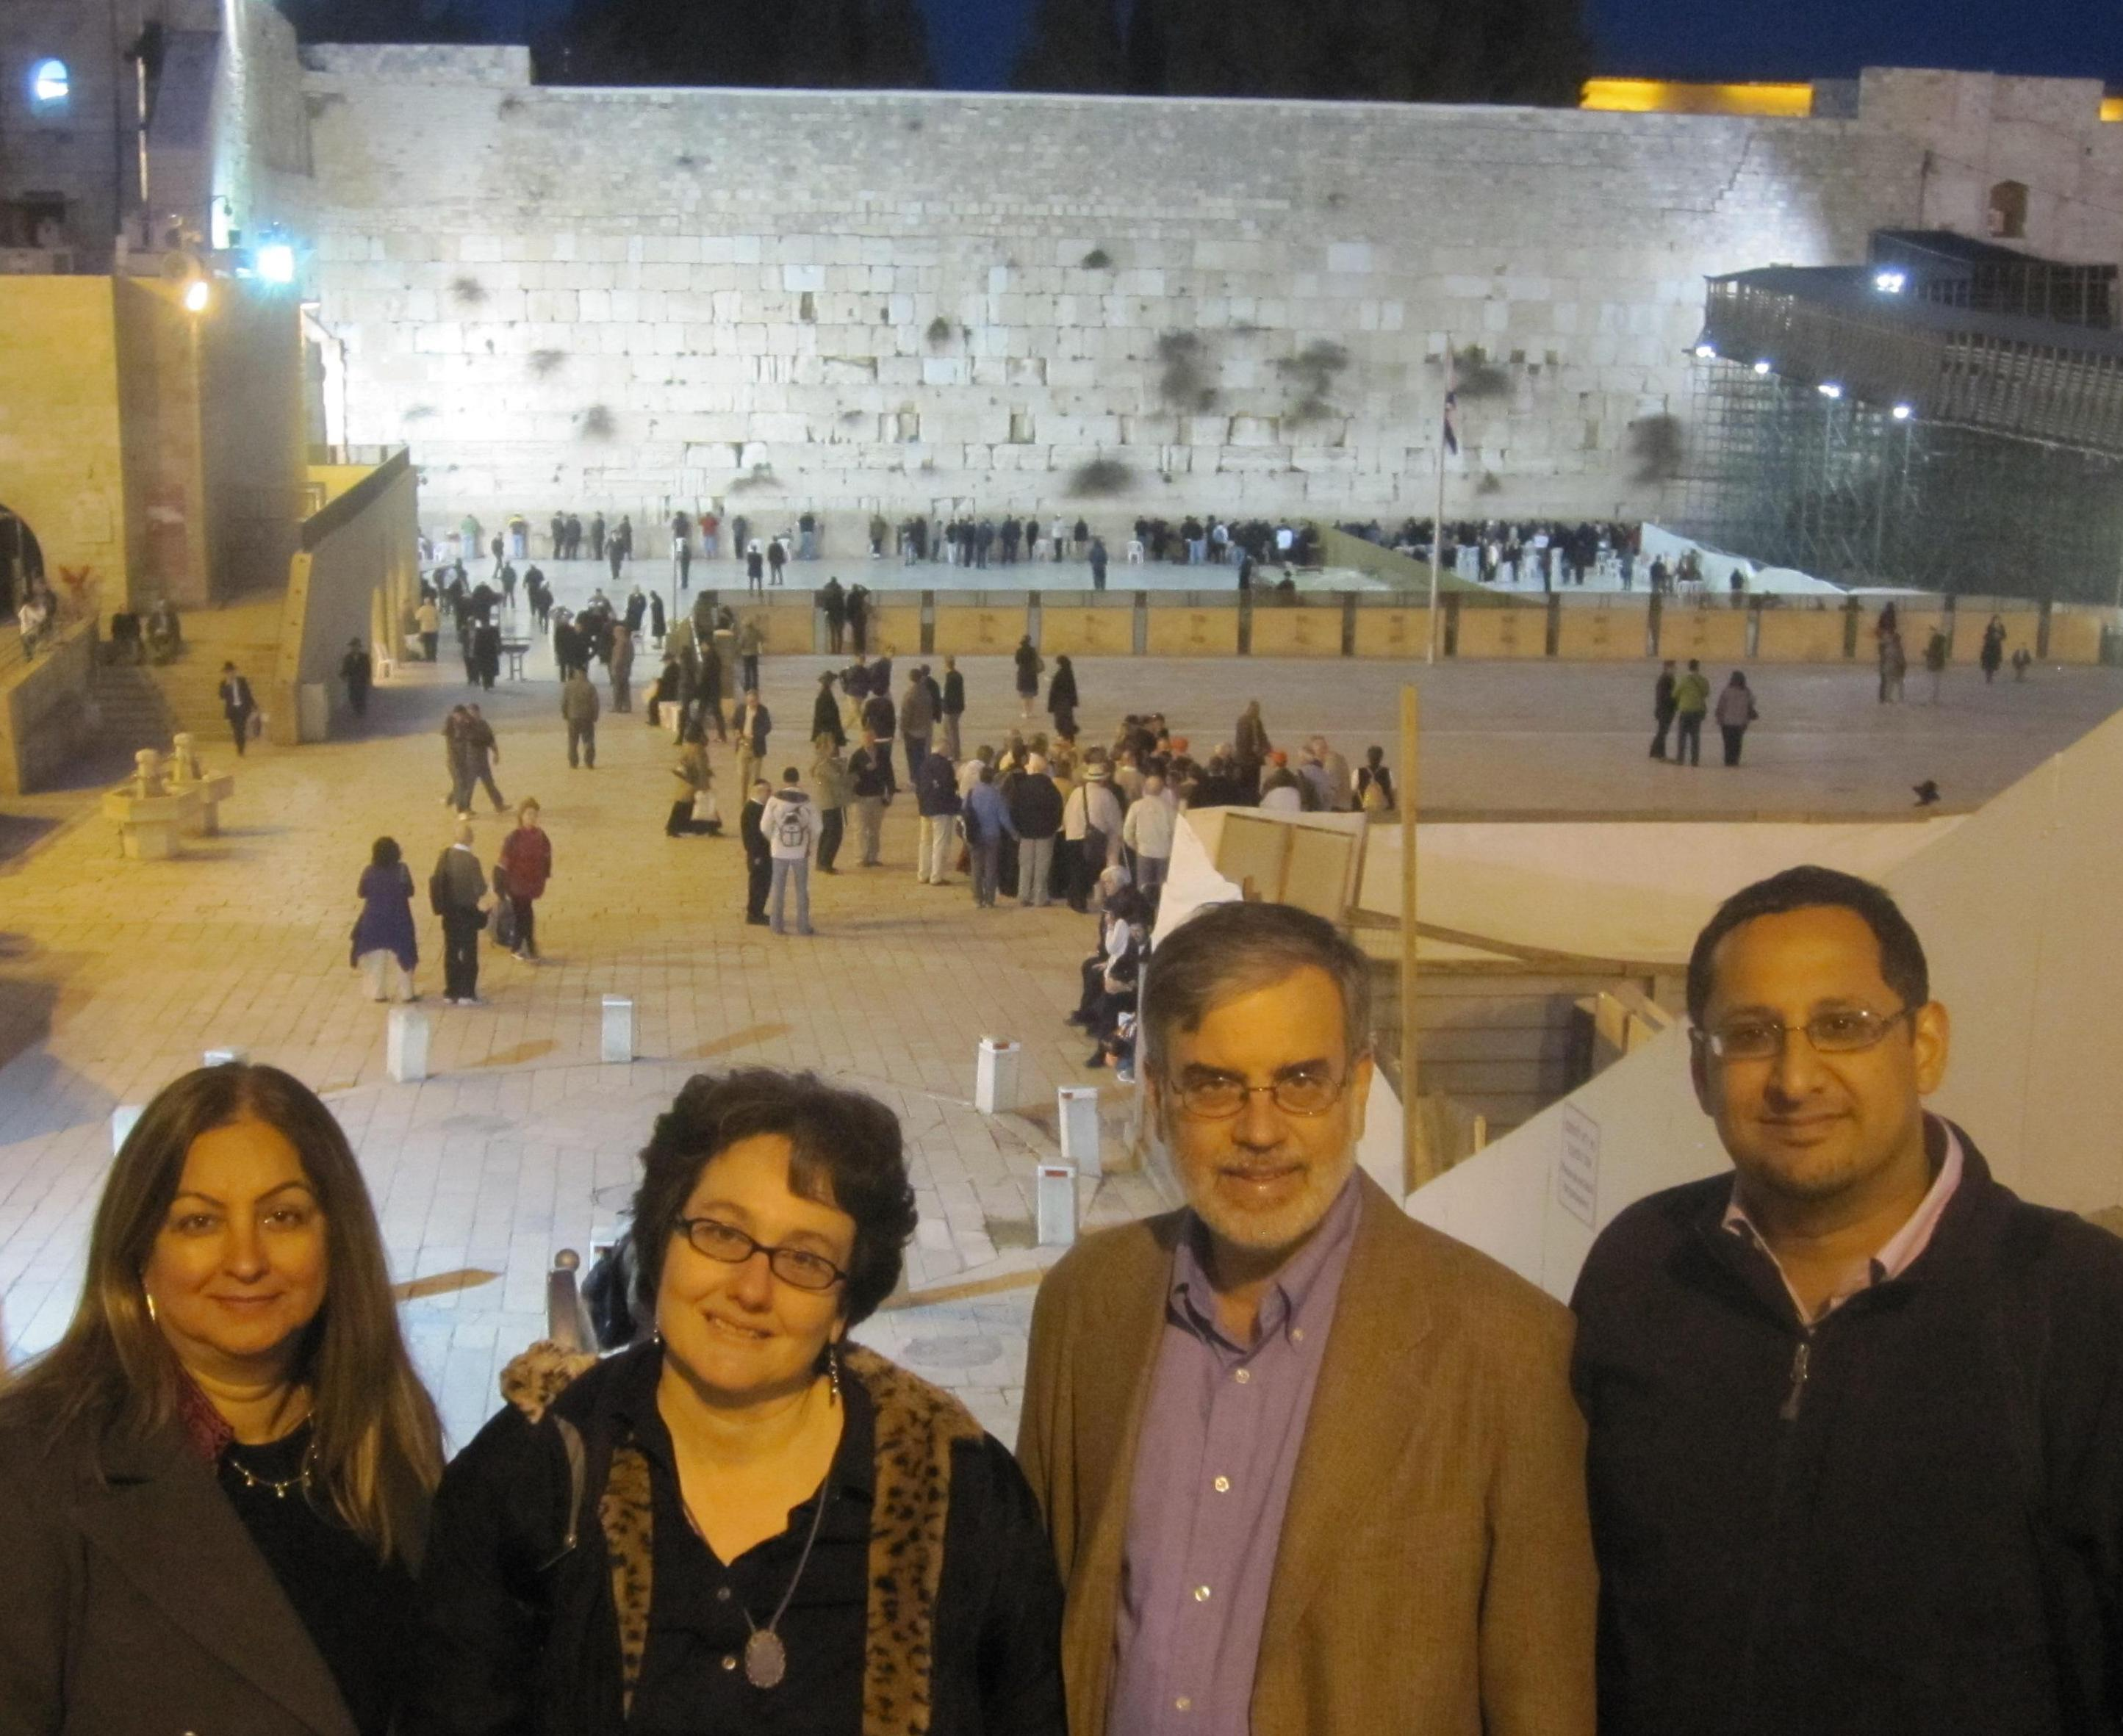 Nargis Virani, Naomi Seidman, Arthur Holder, Munir Jiwa at the Western Wall in Jerusalem